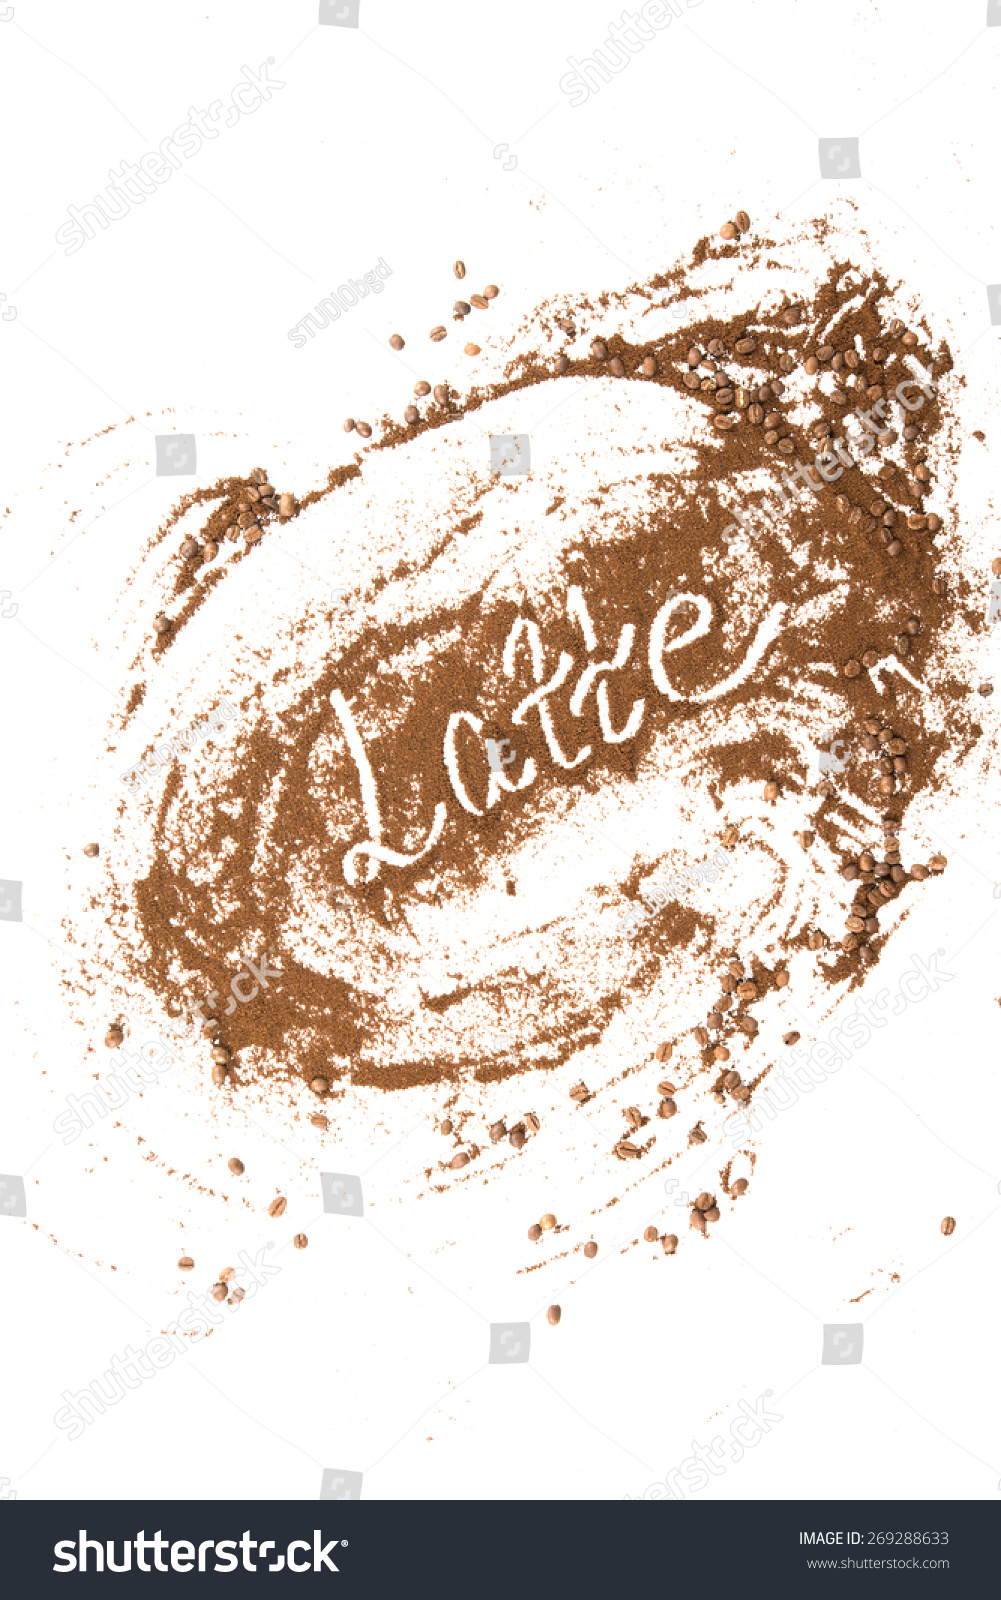 Online image photo editor shutterstock editor for Painting with coffee grounds